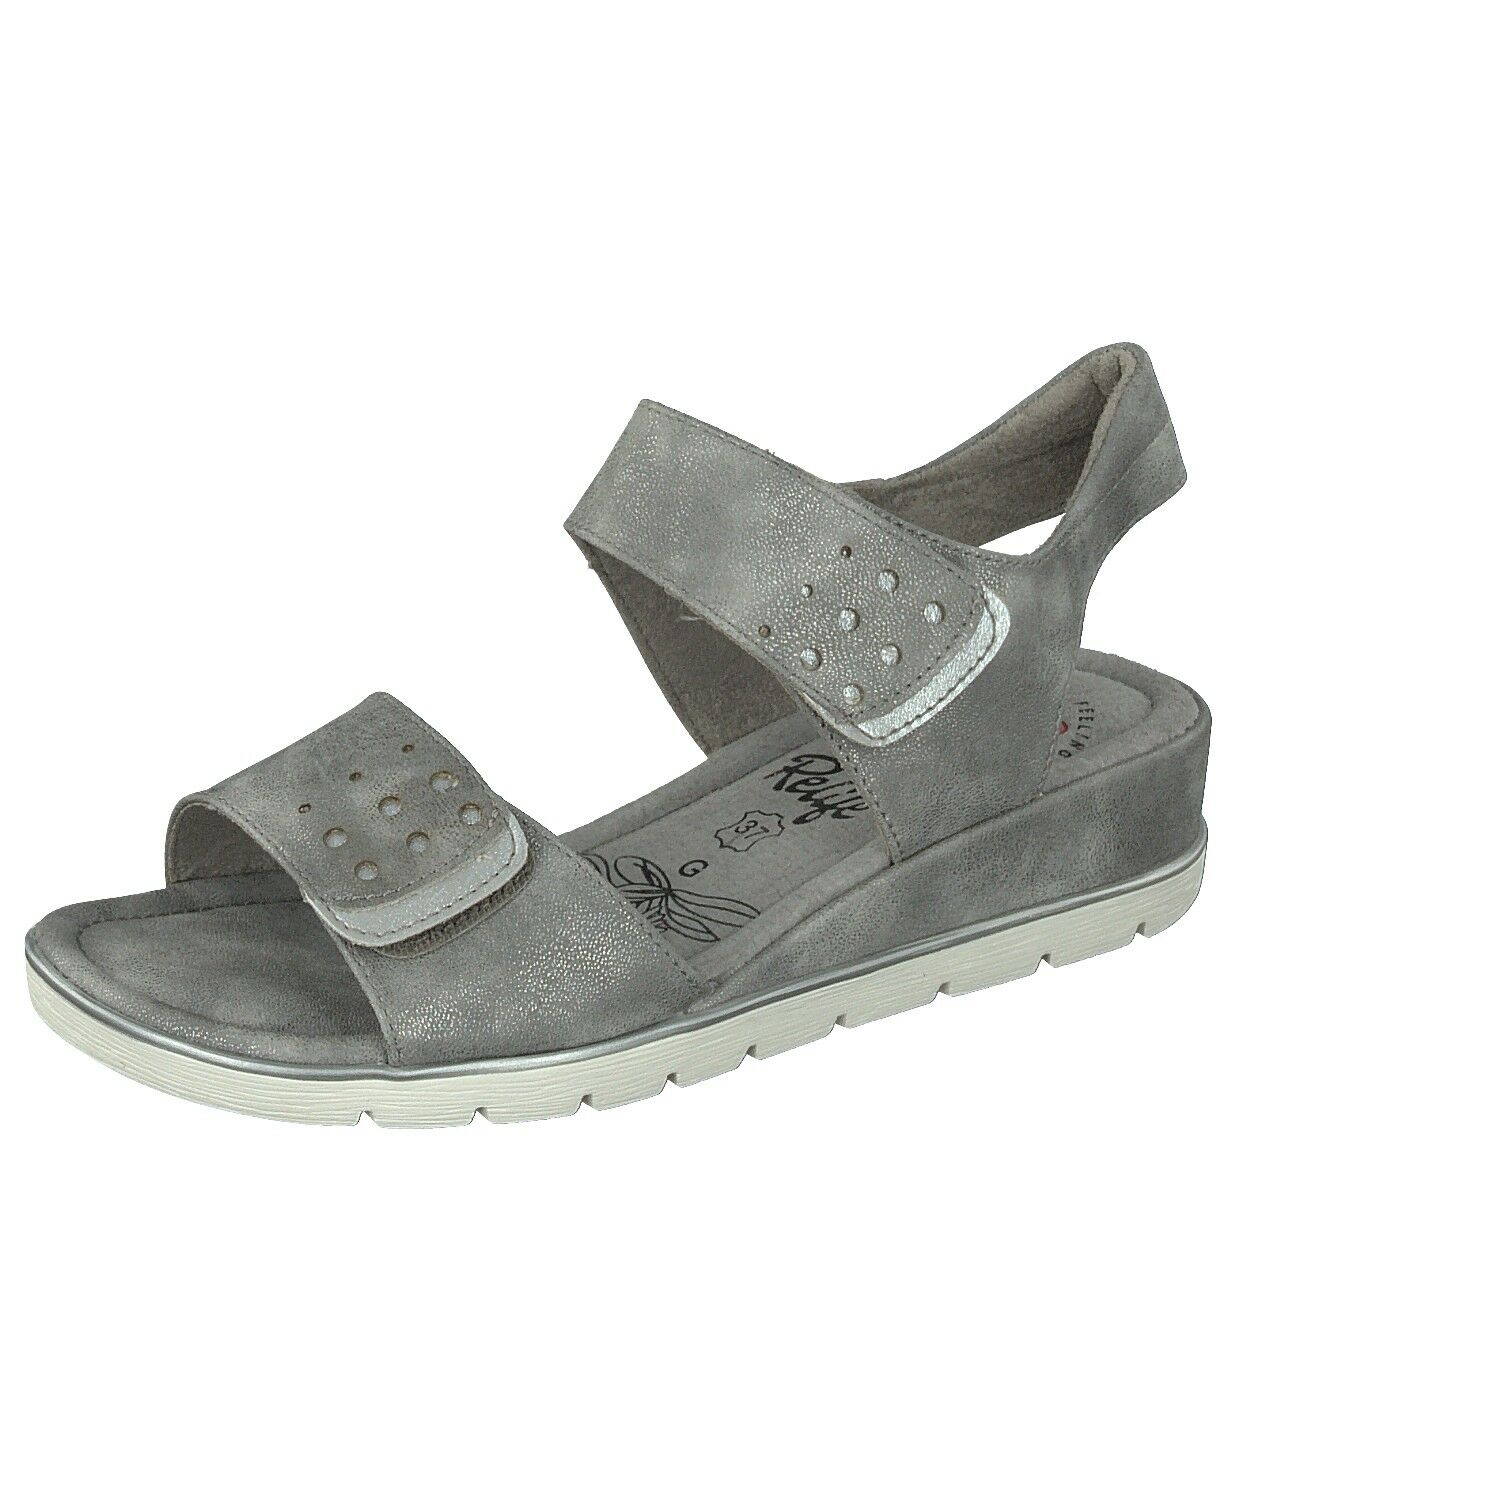 RELIFE Ladies shoes Leisure High-Heeled Sandals 8717-17701-07 Grey with Double